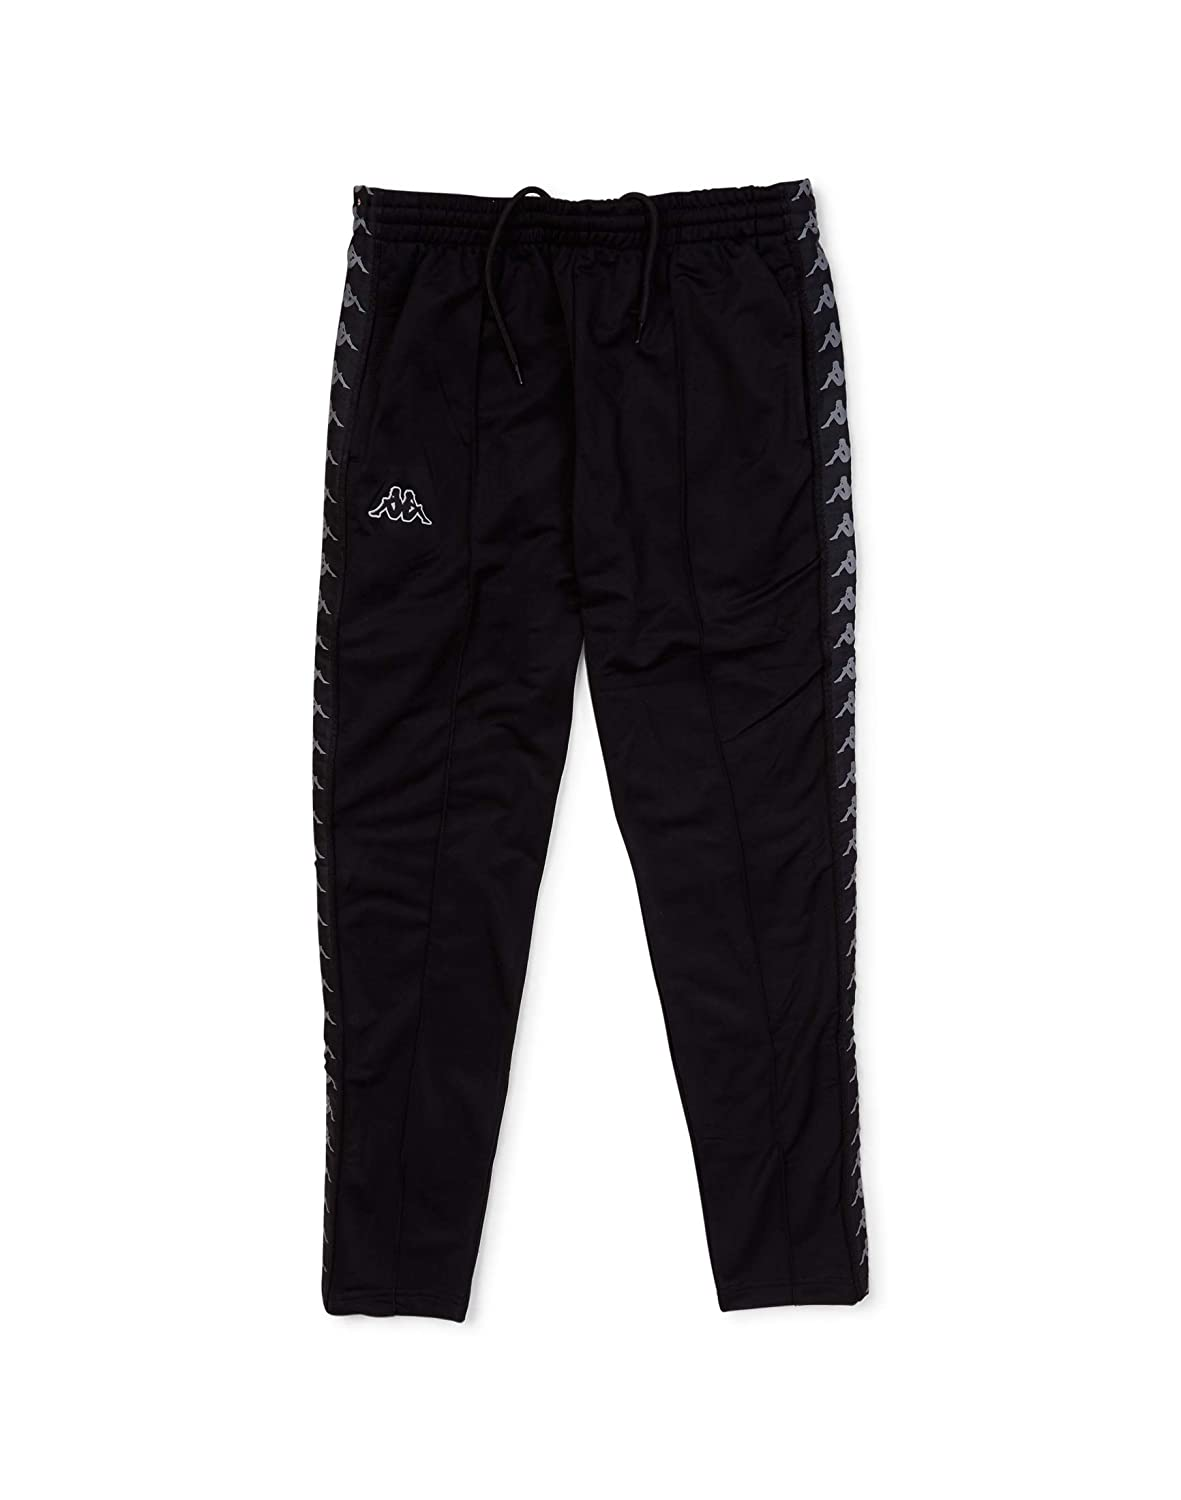 a9c8a0c63a Kappa Mens 222 Banda Astoria Slim Snap Track Pants: Amazon.co.uk: Clothing